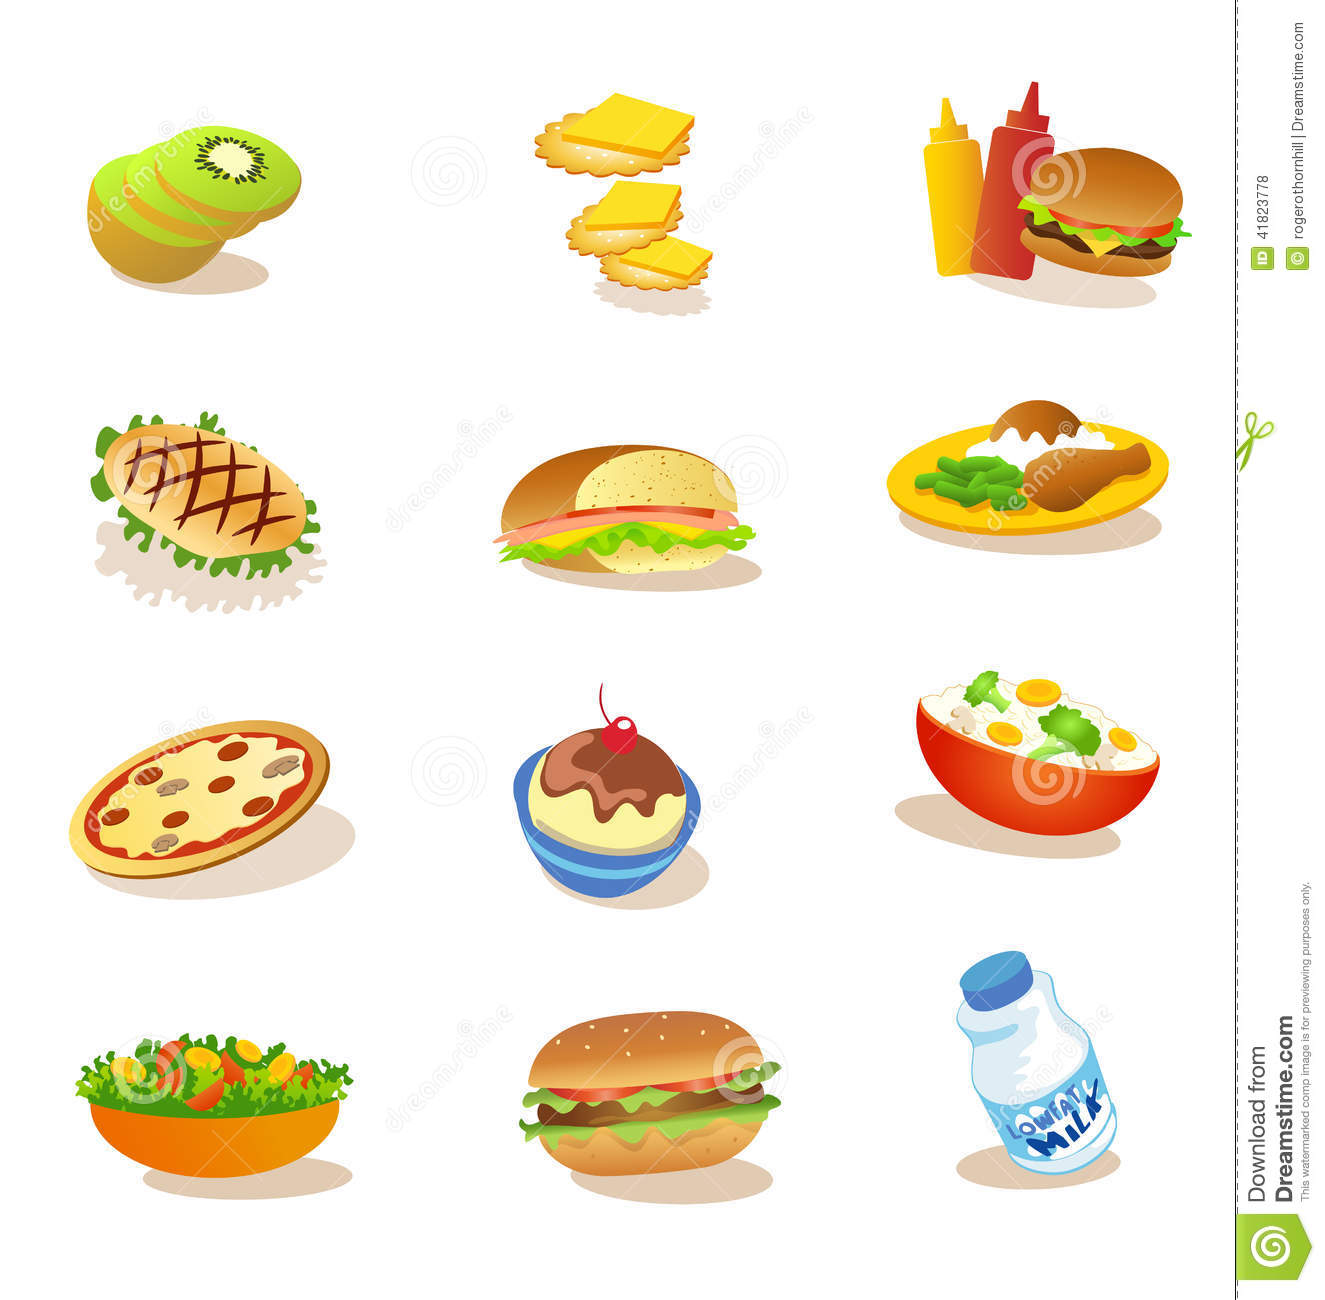 Stock Illustration Set Healthy Food Illustrations Lunch Dinner Image41823778 on Stock Vector Illustration Food Pyramid For Kids Cartoon